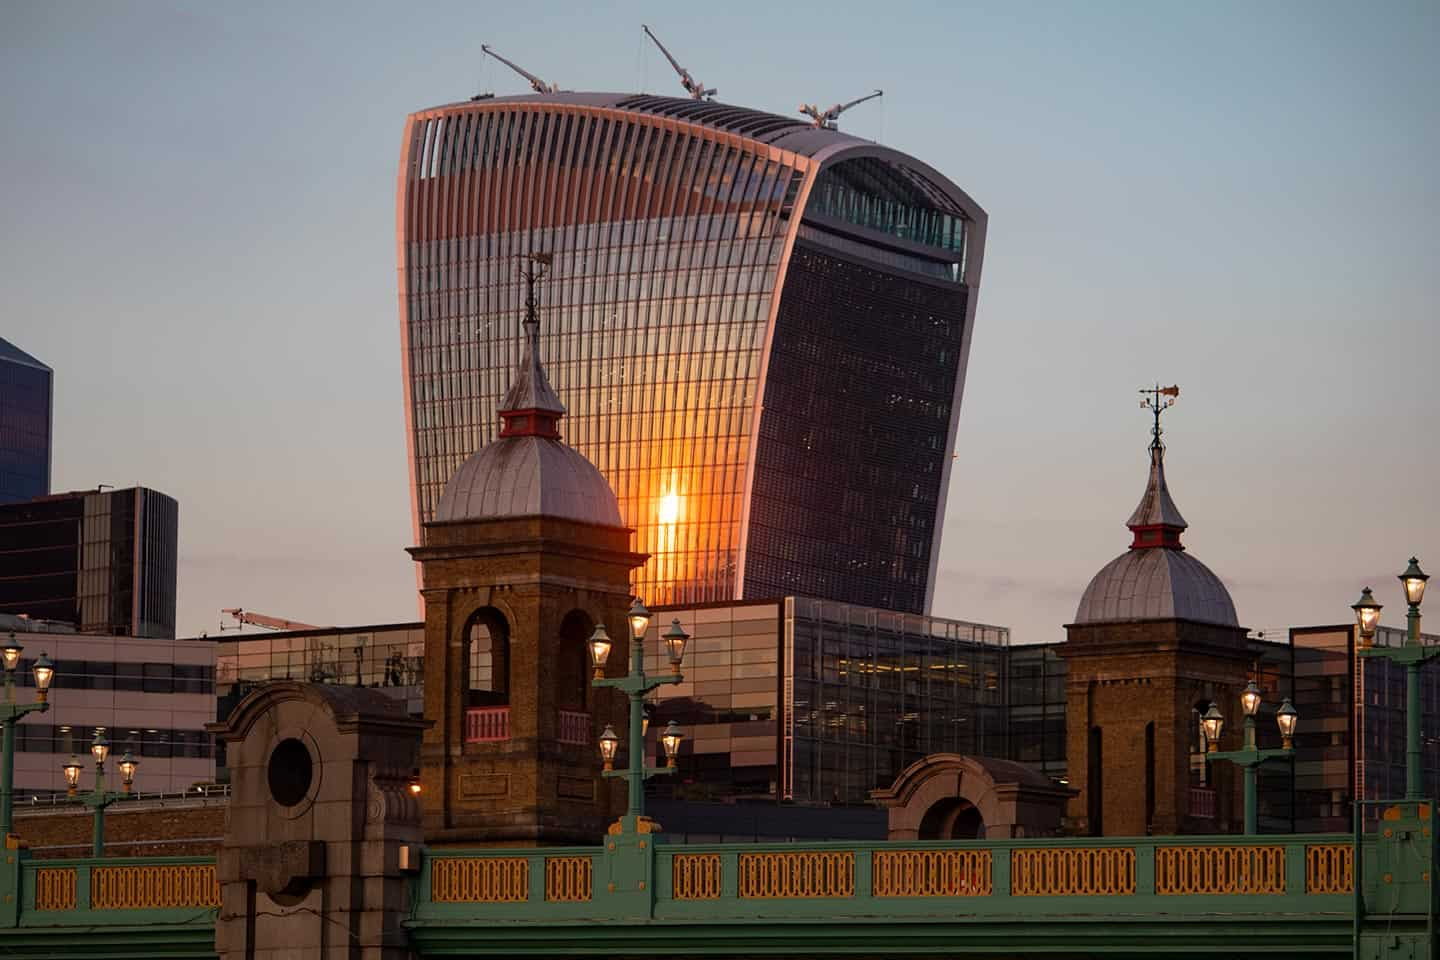 Image of 20 Fenchurch Street, better known as the Walkie-Talkie building in London